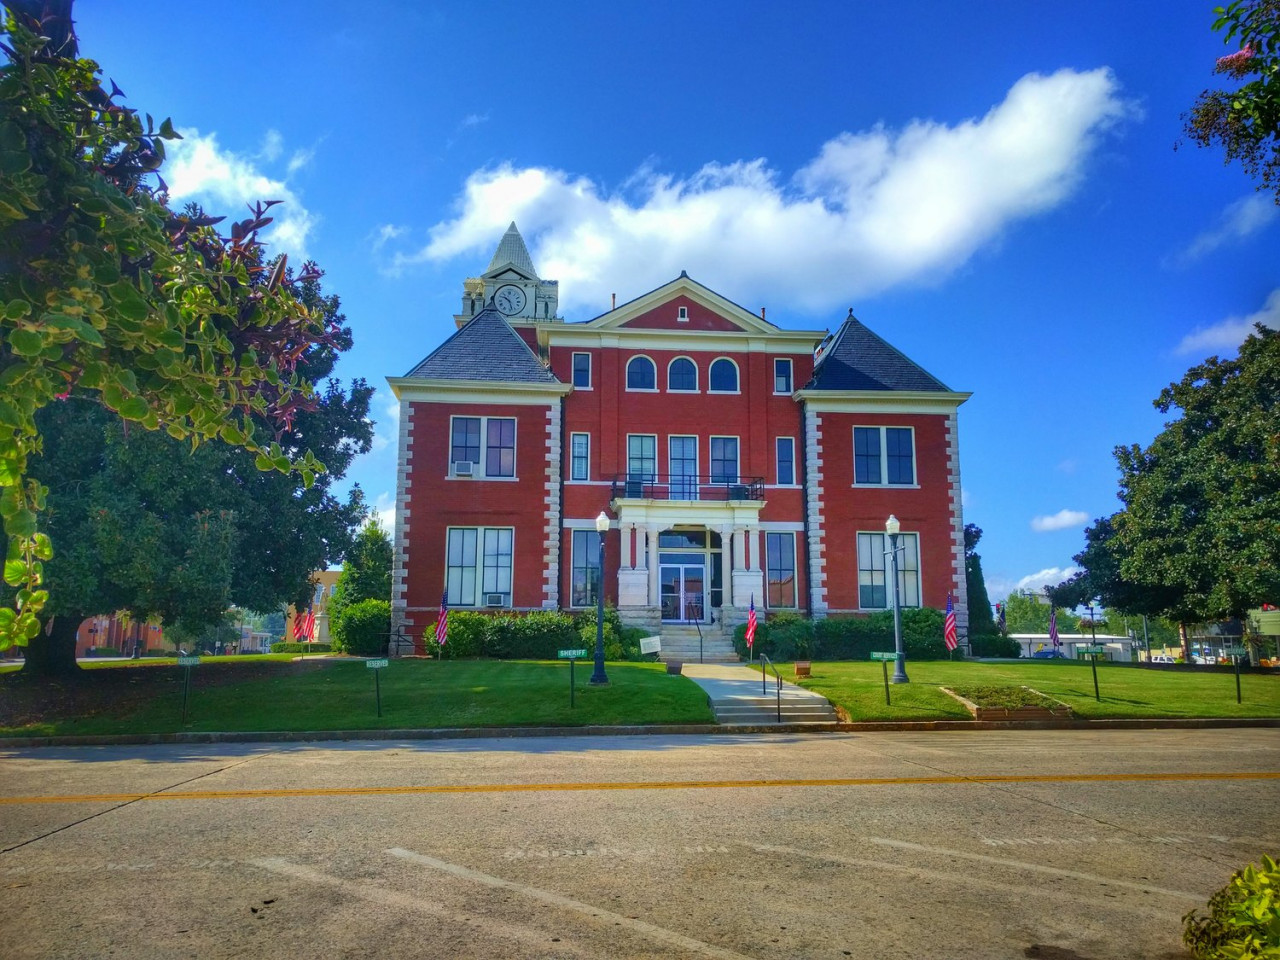 The Hawkins Library (aka: Butts County Courthouse).